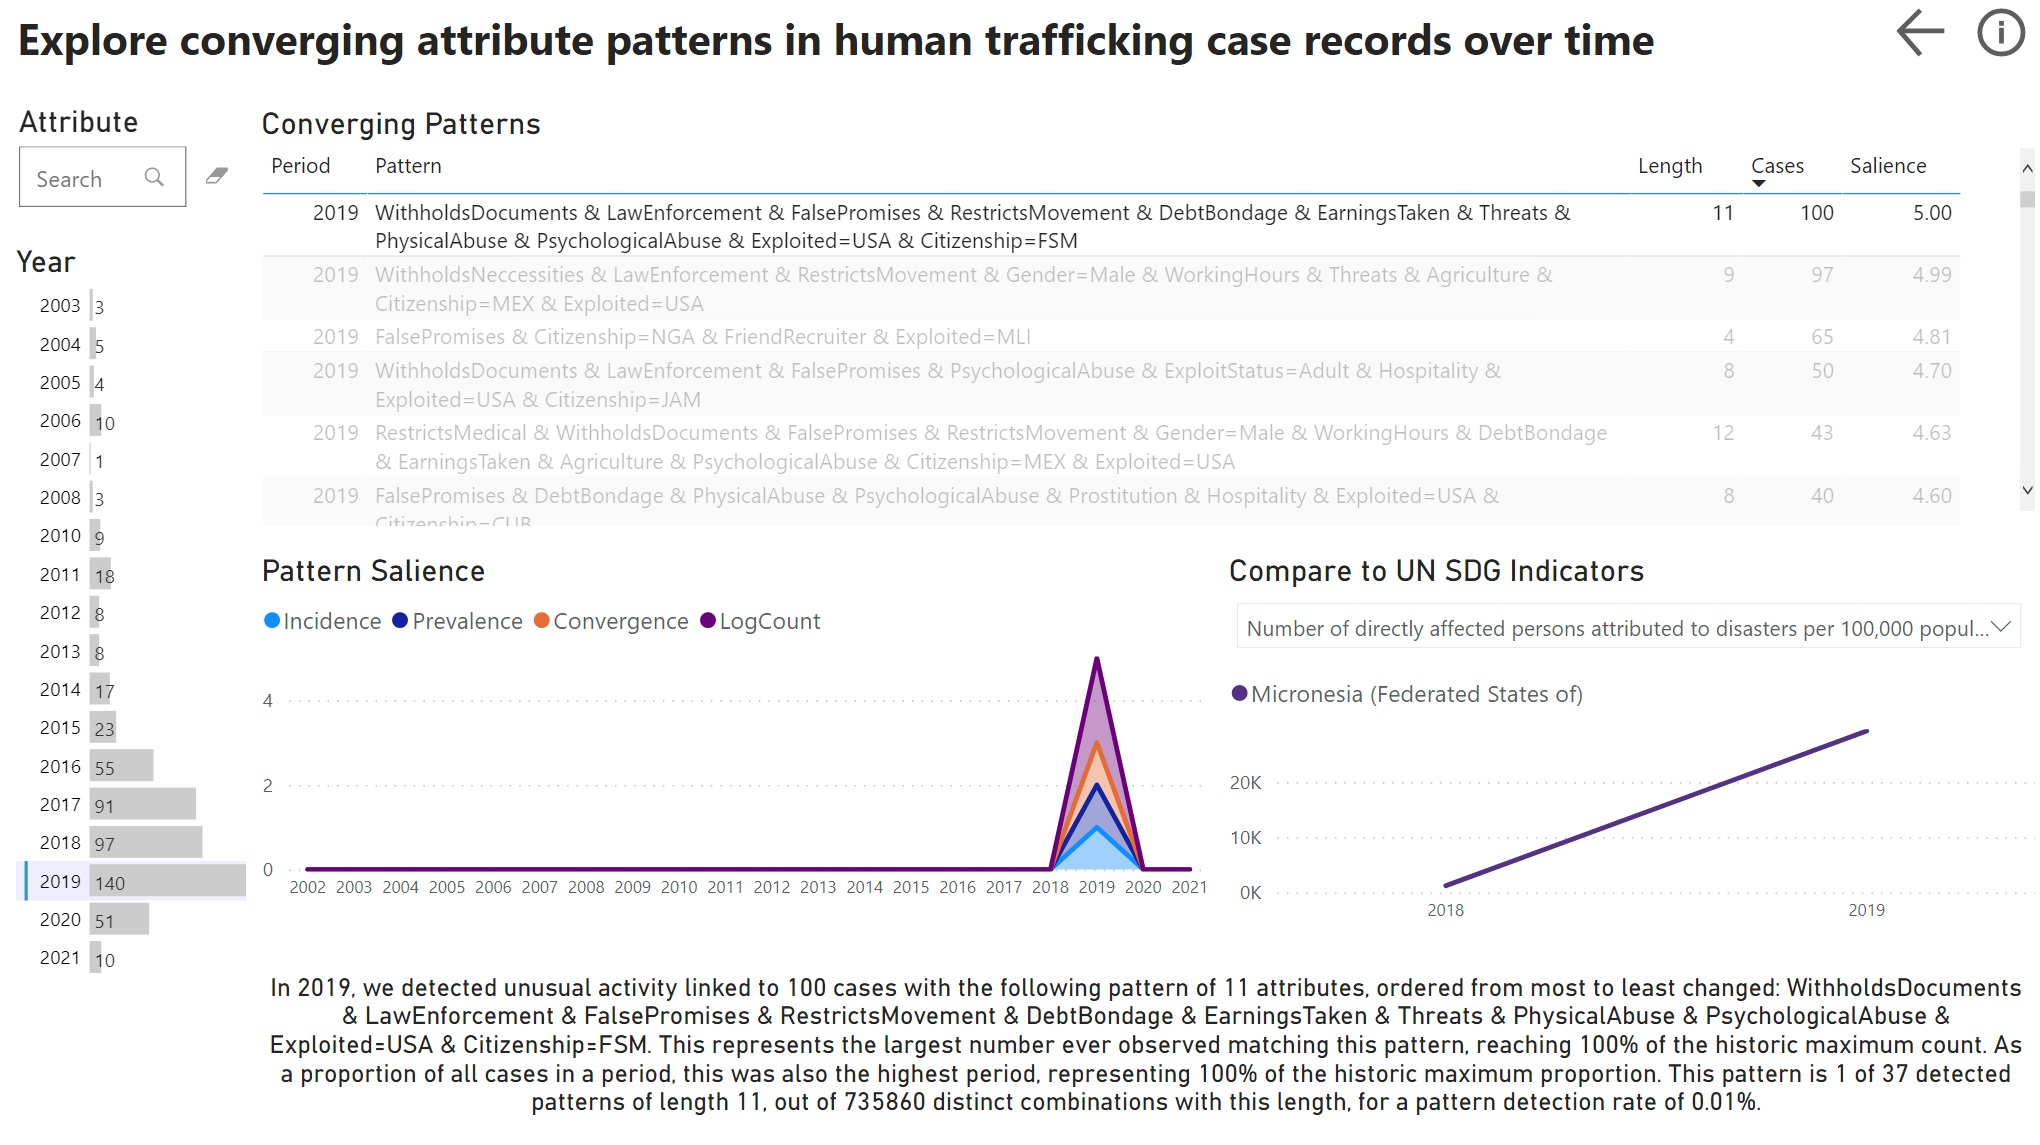 """Interactive dashboard in Power BI titled """"Explore converging attribute patterns in human trafficking case records over time"""". To the left, a histogram of pattern count by year, with a maximum of 140 patterns in 2019. The year 2019 is also selected, showing a table of the 140 patterns linked to 2019. The patterns are ranked by a salience score, with the top pattern having a salience score of 5, a length of 11 attributes, and a link to 100 cases. This pattern is selected and contains a range of control methods for citizens of Micronesia exploited in the US. Below the table, there is a time series titled """"Pattern salience"""" that shows a sole spike in 2019. To the right of this time series is another time series drawn from data on UN SDG indicators, showing a rise in the number of persons directly affected by disaster in Micronesia in 2019. Below these time series is an explanation of the pattern. This explanation notes that the pattern detected in 2019 corresponds to the historic maximum count of that attribute combination, and that it is one of 37 detected patterns of length 11, out of 735,860 distinct combinations with this length, representing a pattern detection rate of 0.01%."""